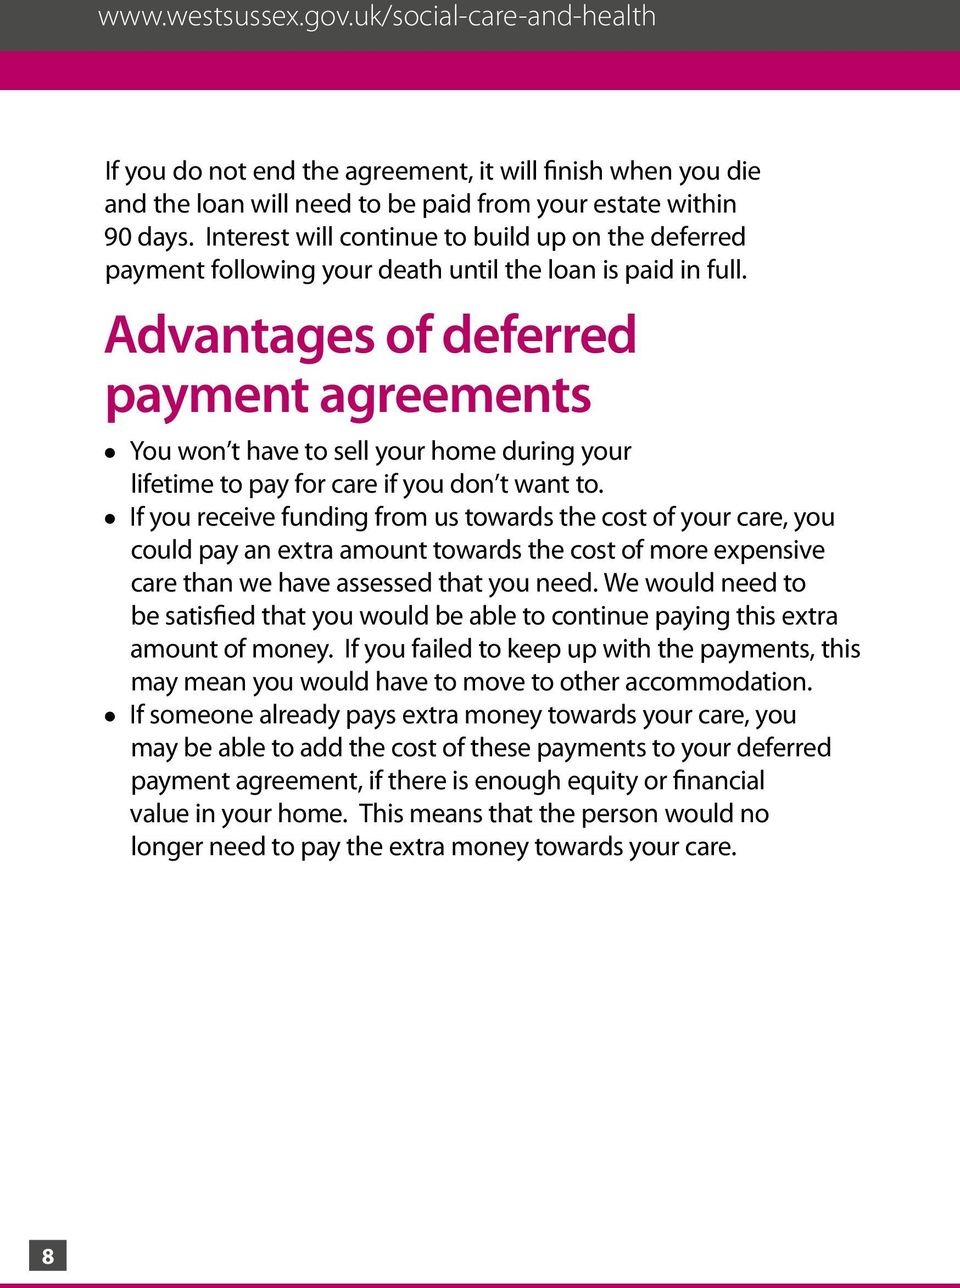 Advantages of deferred payment agreements l You won t have to sell your home during your lifetime to pay for care if you don t want to.